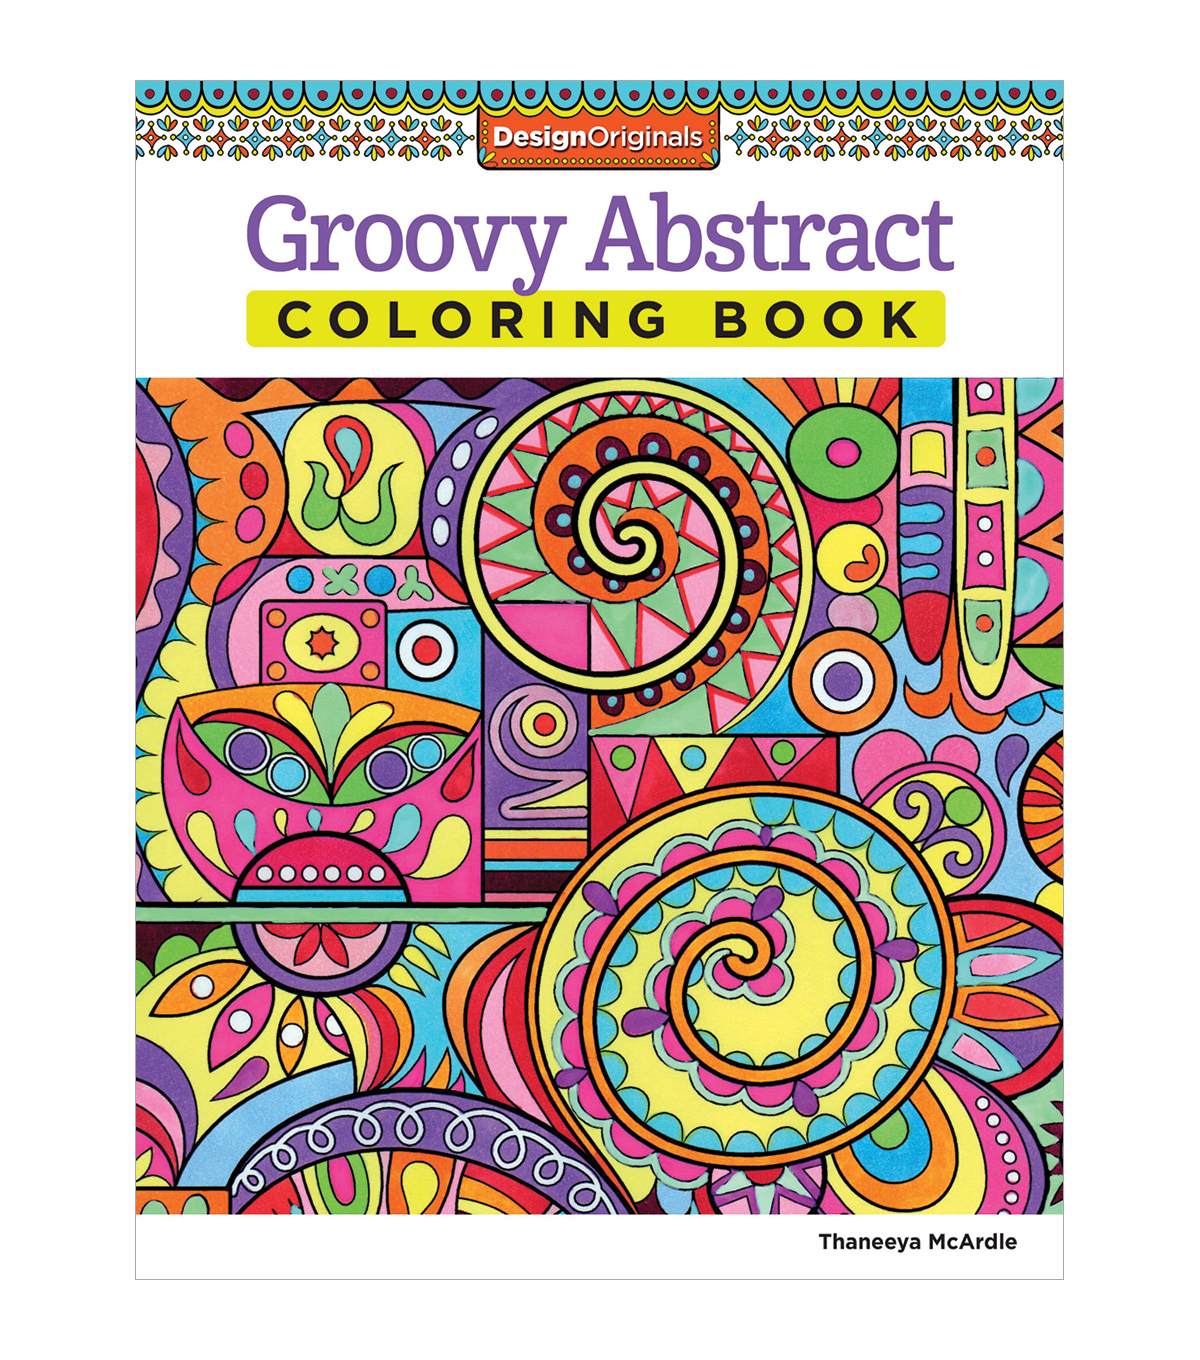 Groovy Abstract Coloring Book - Adult Coloring Books | JOANN